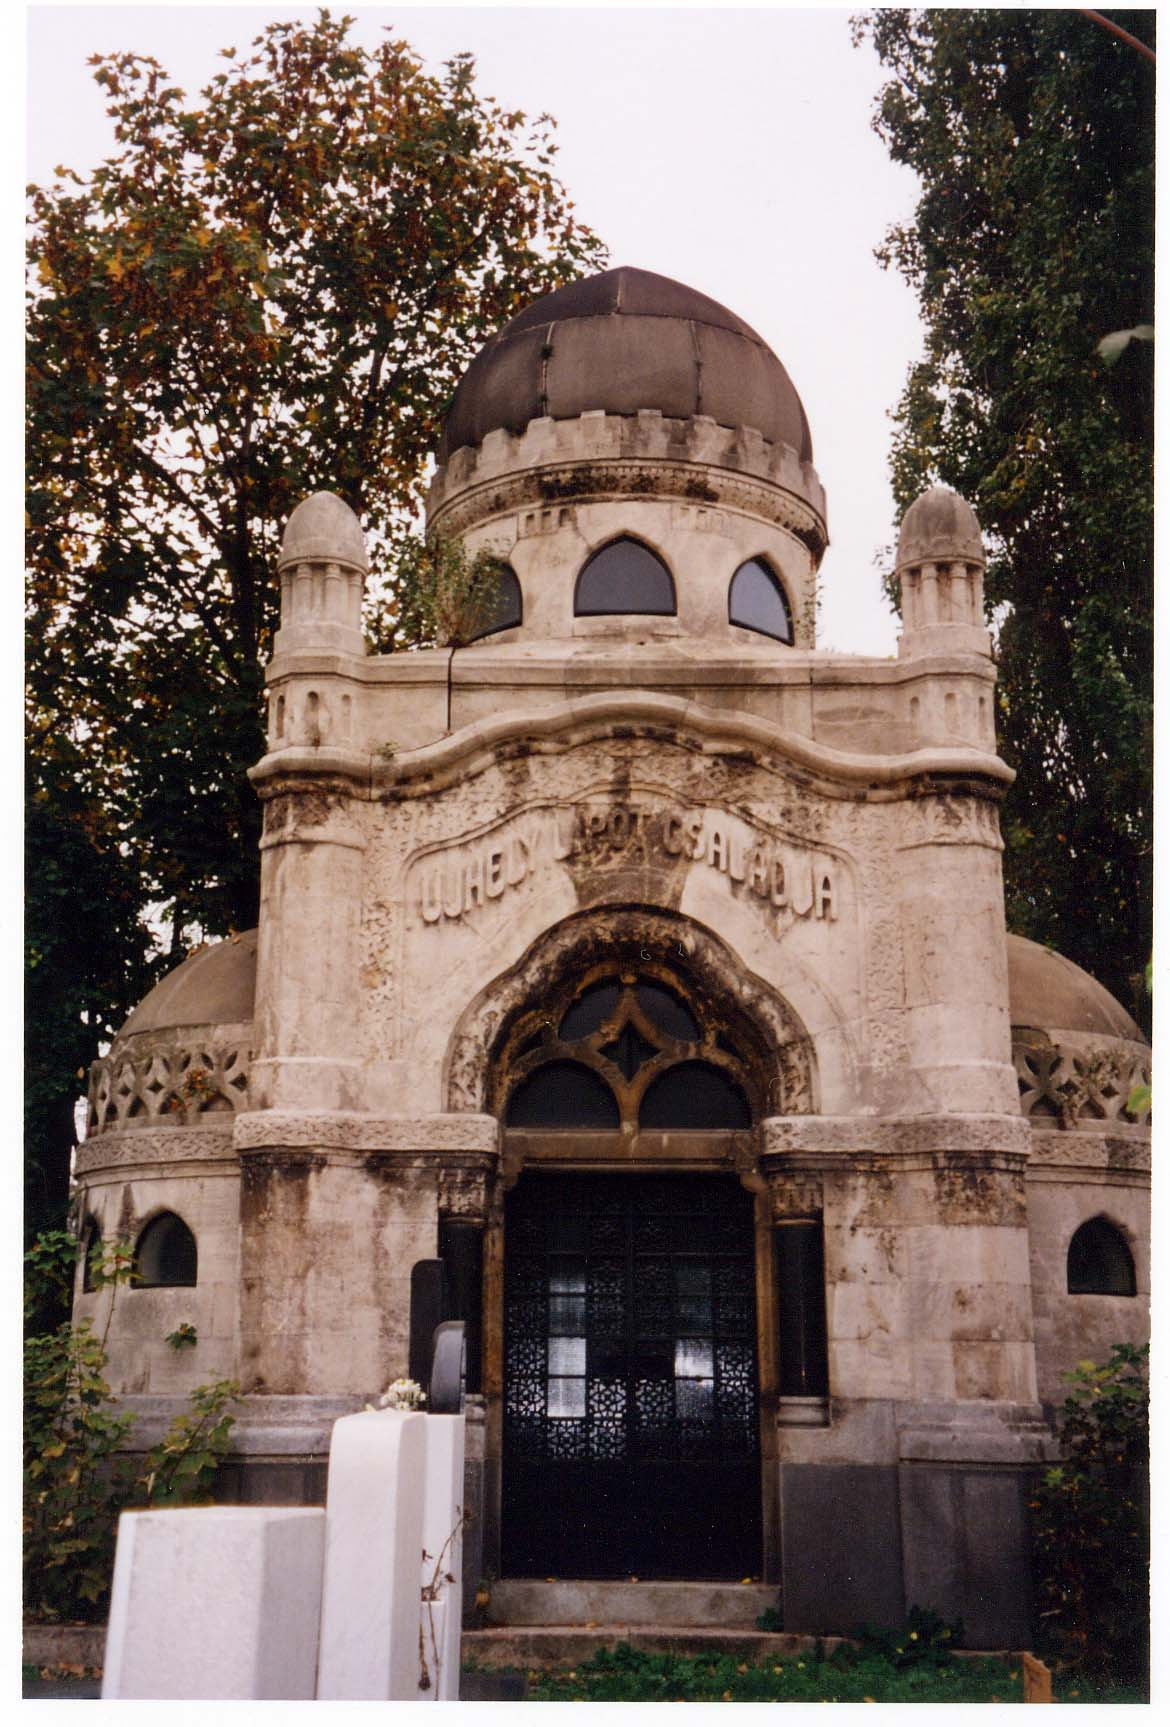 Ujhely family tomb, designed by Lipot Baumhorn, 2004